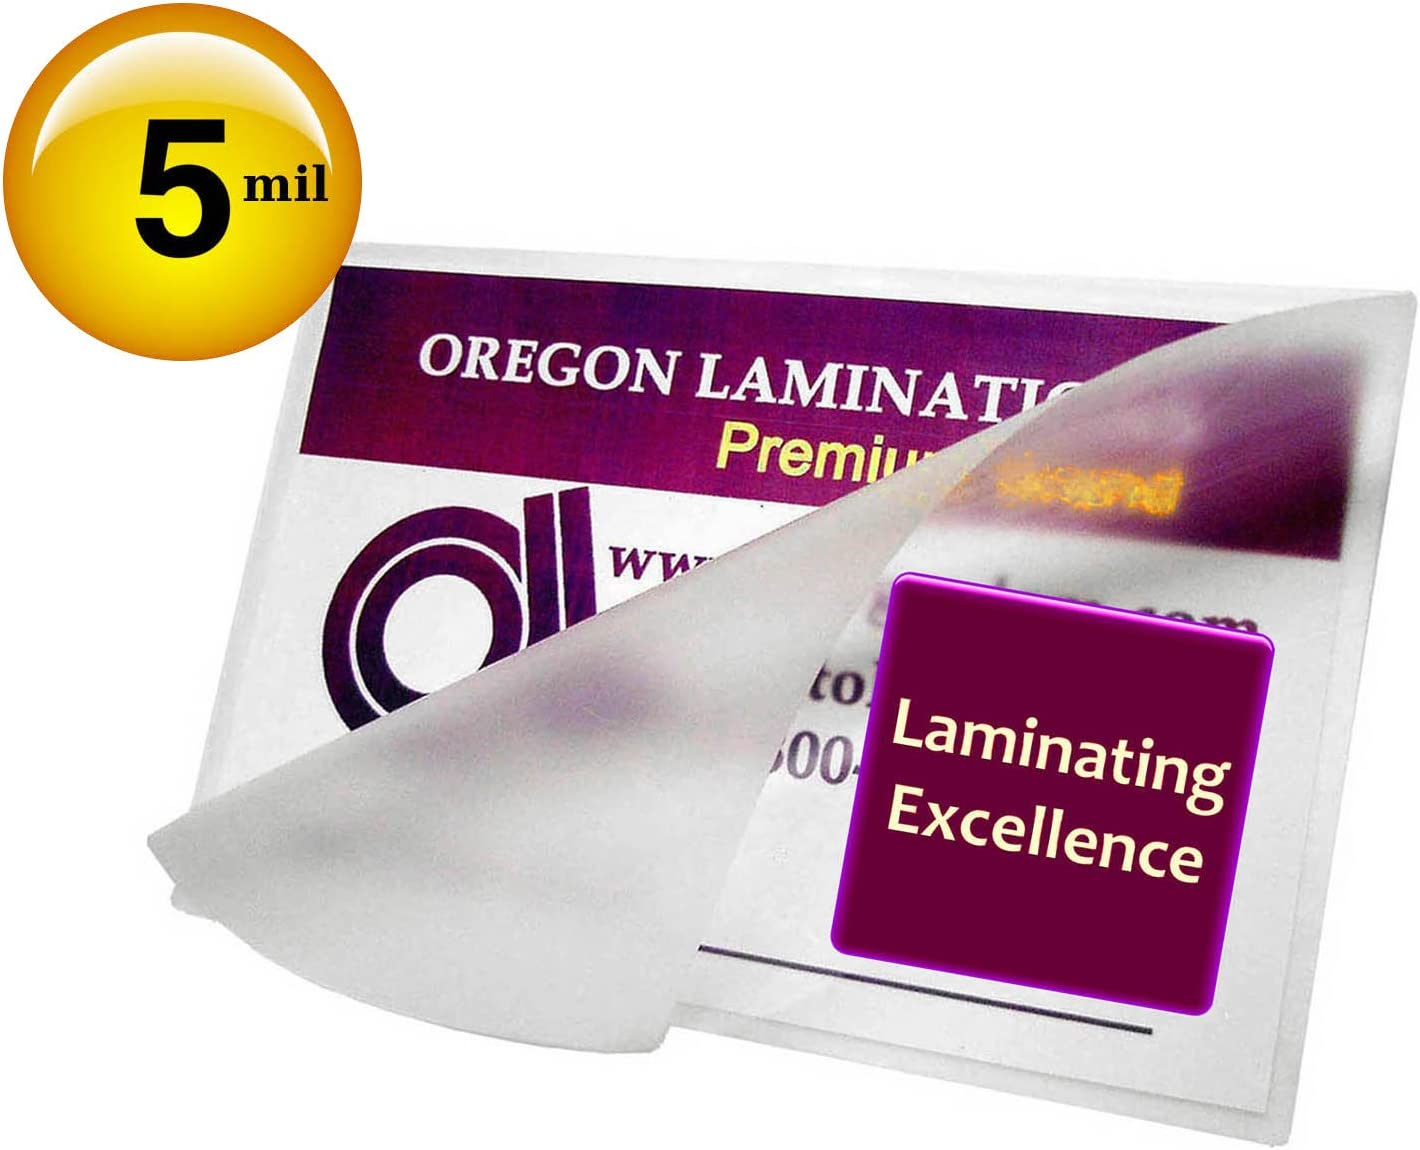 Qty 500 Military-R Laminating Pouches 2-3/8 x 3-1/2 Laminator Sleeves 5 Mil